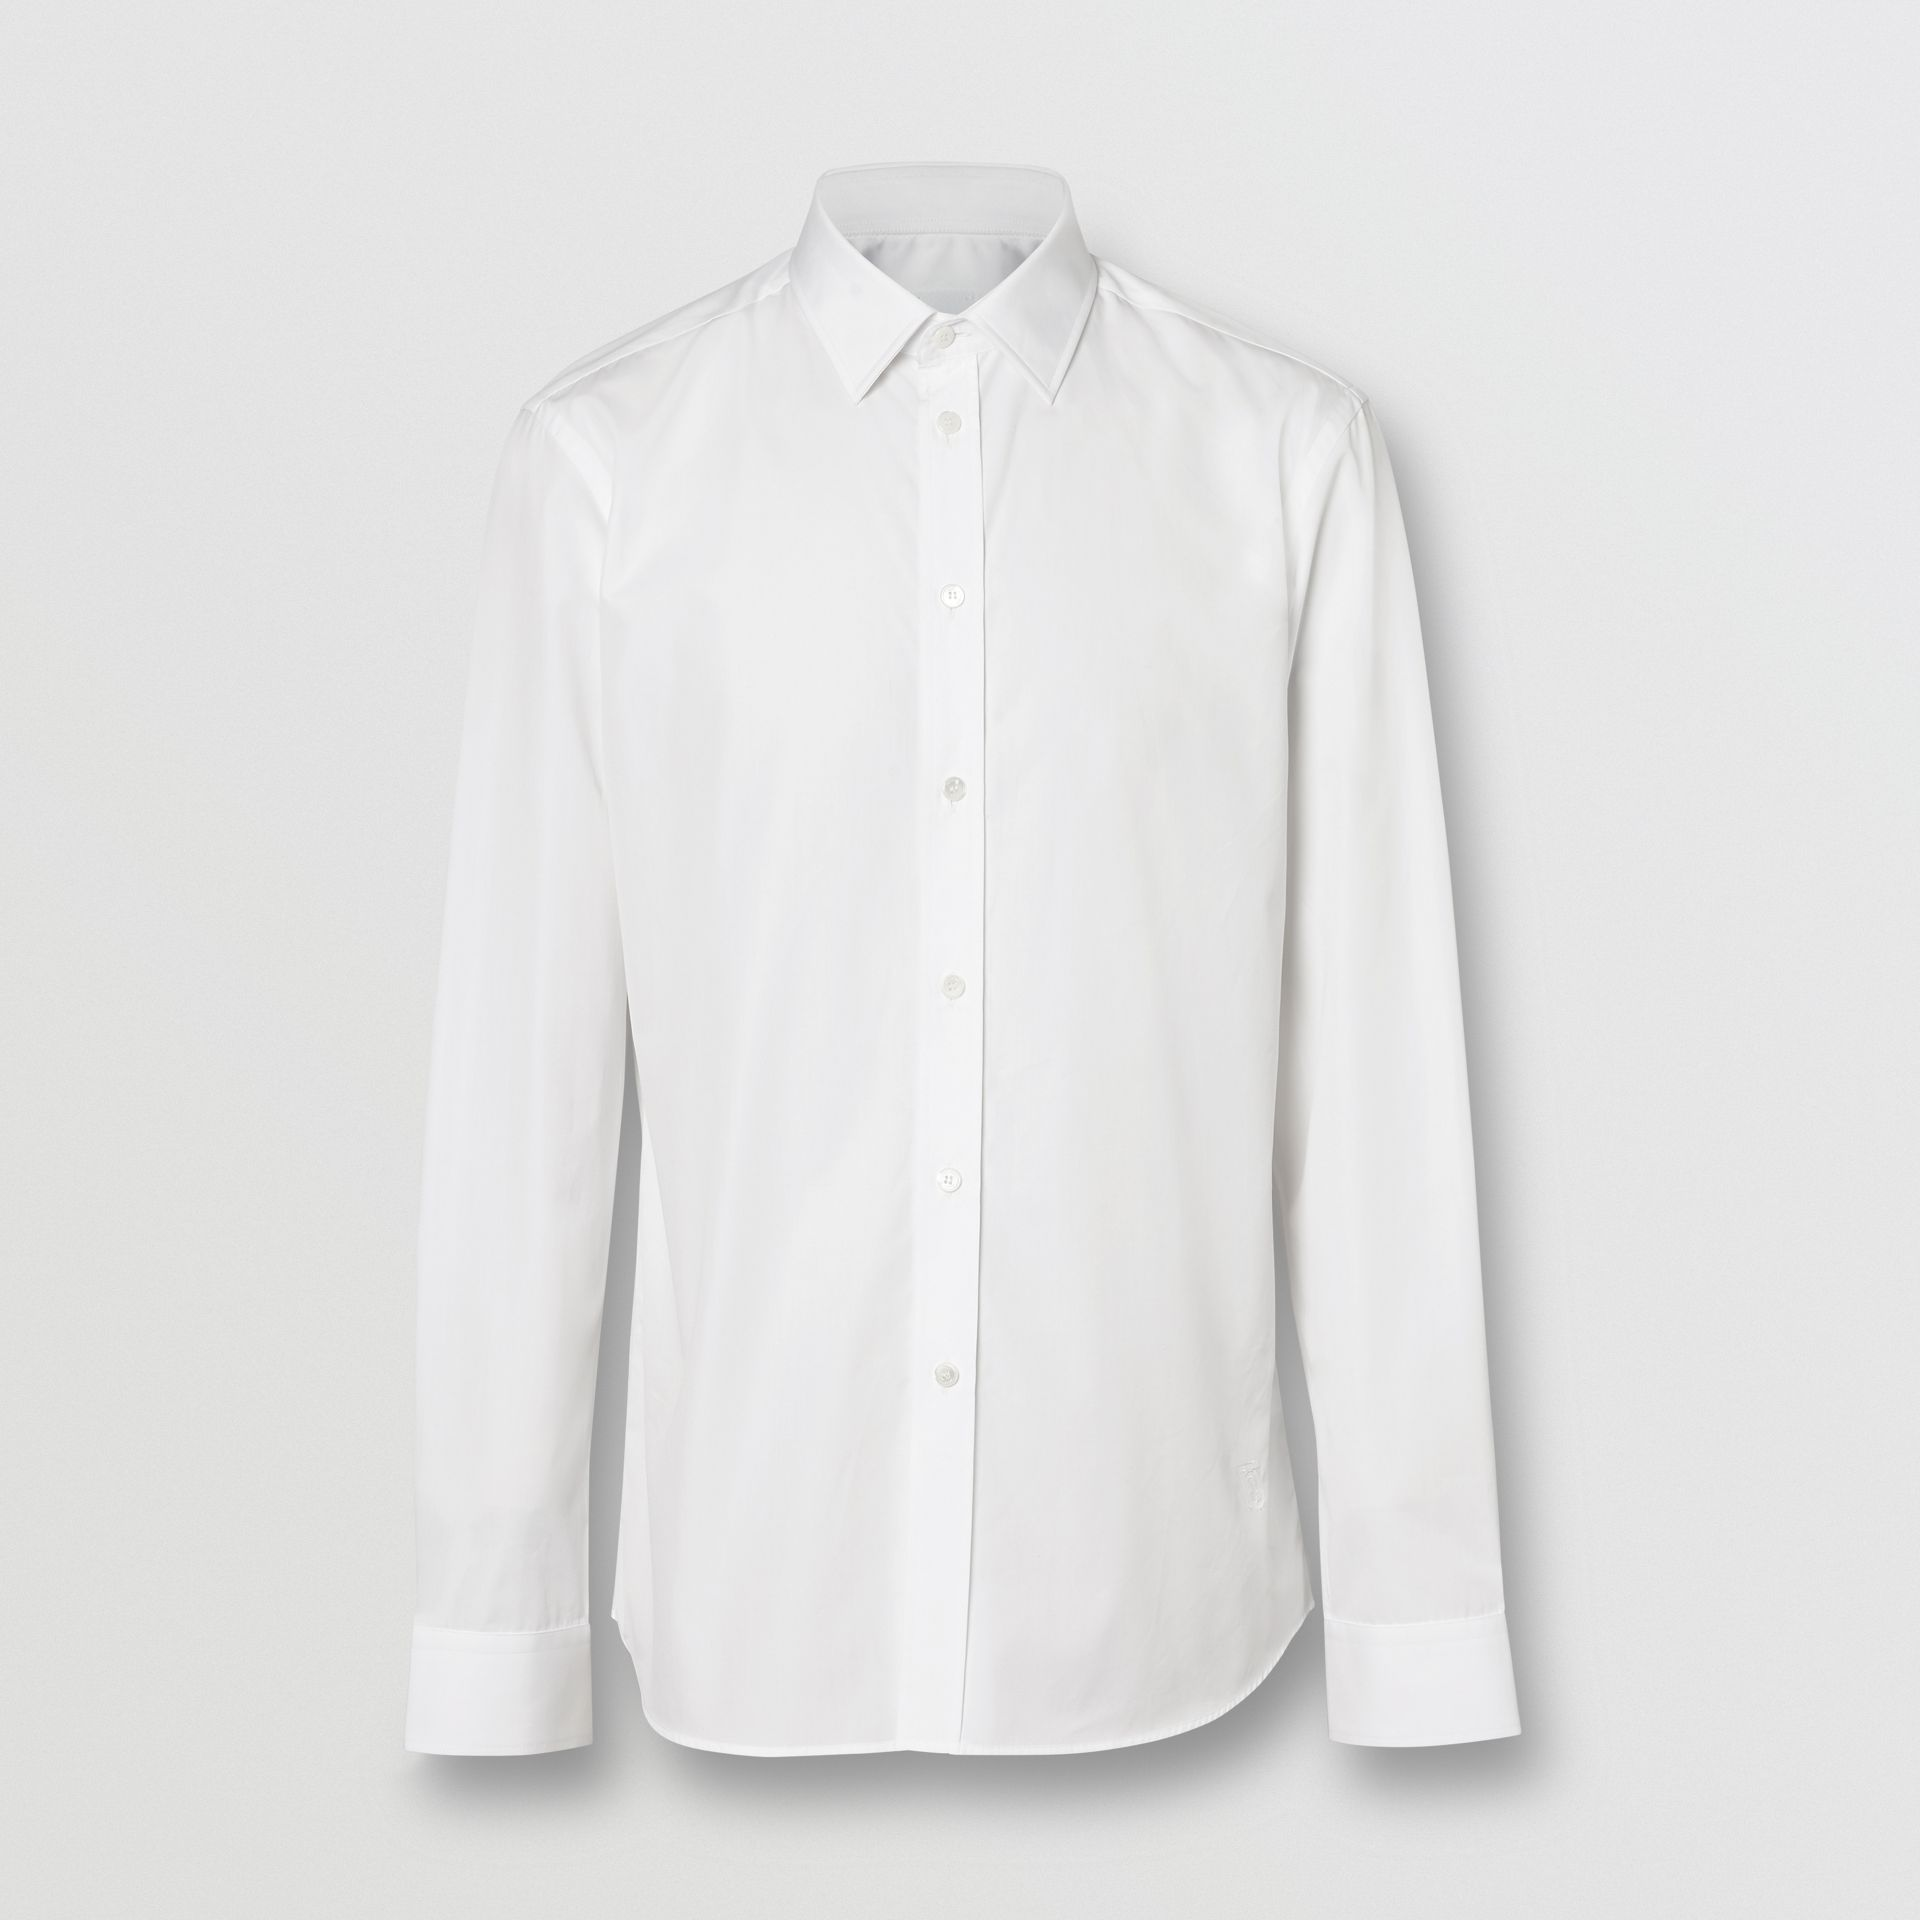 Slim Fit Monogram Motif Cotton Poplin Shirt in White - Men | Burberry Canada - gallery image 3